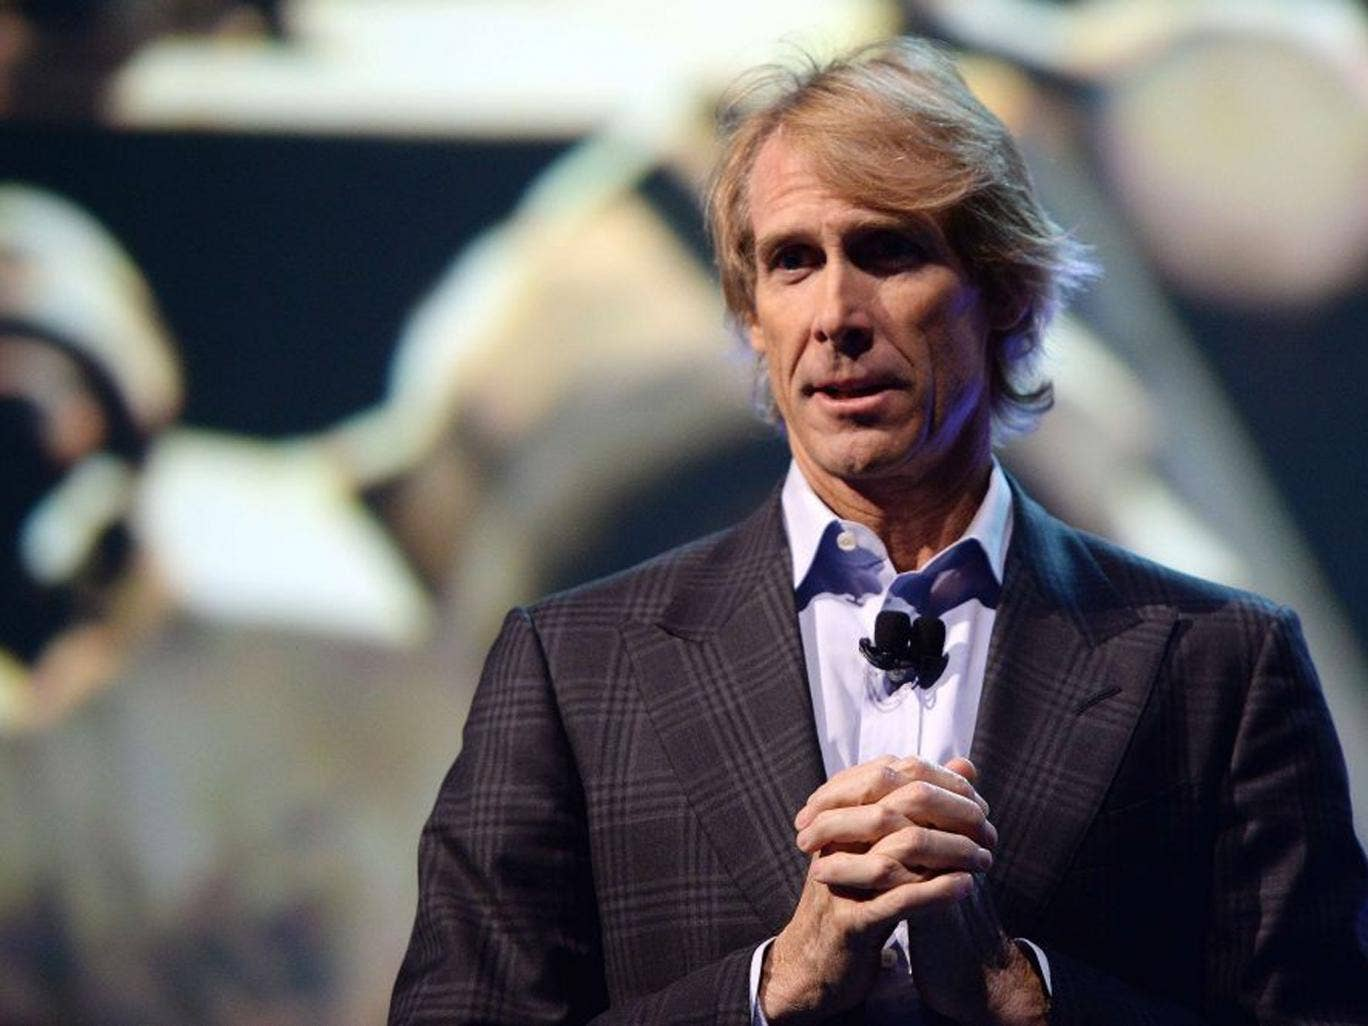 Michael Bay on stage with Samsung VP Joe Stinziano at the Consumer Electronic Show